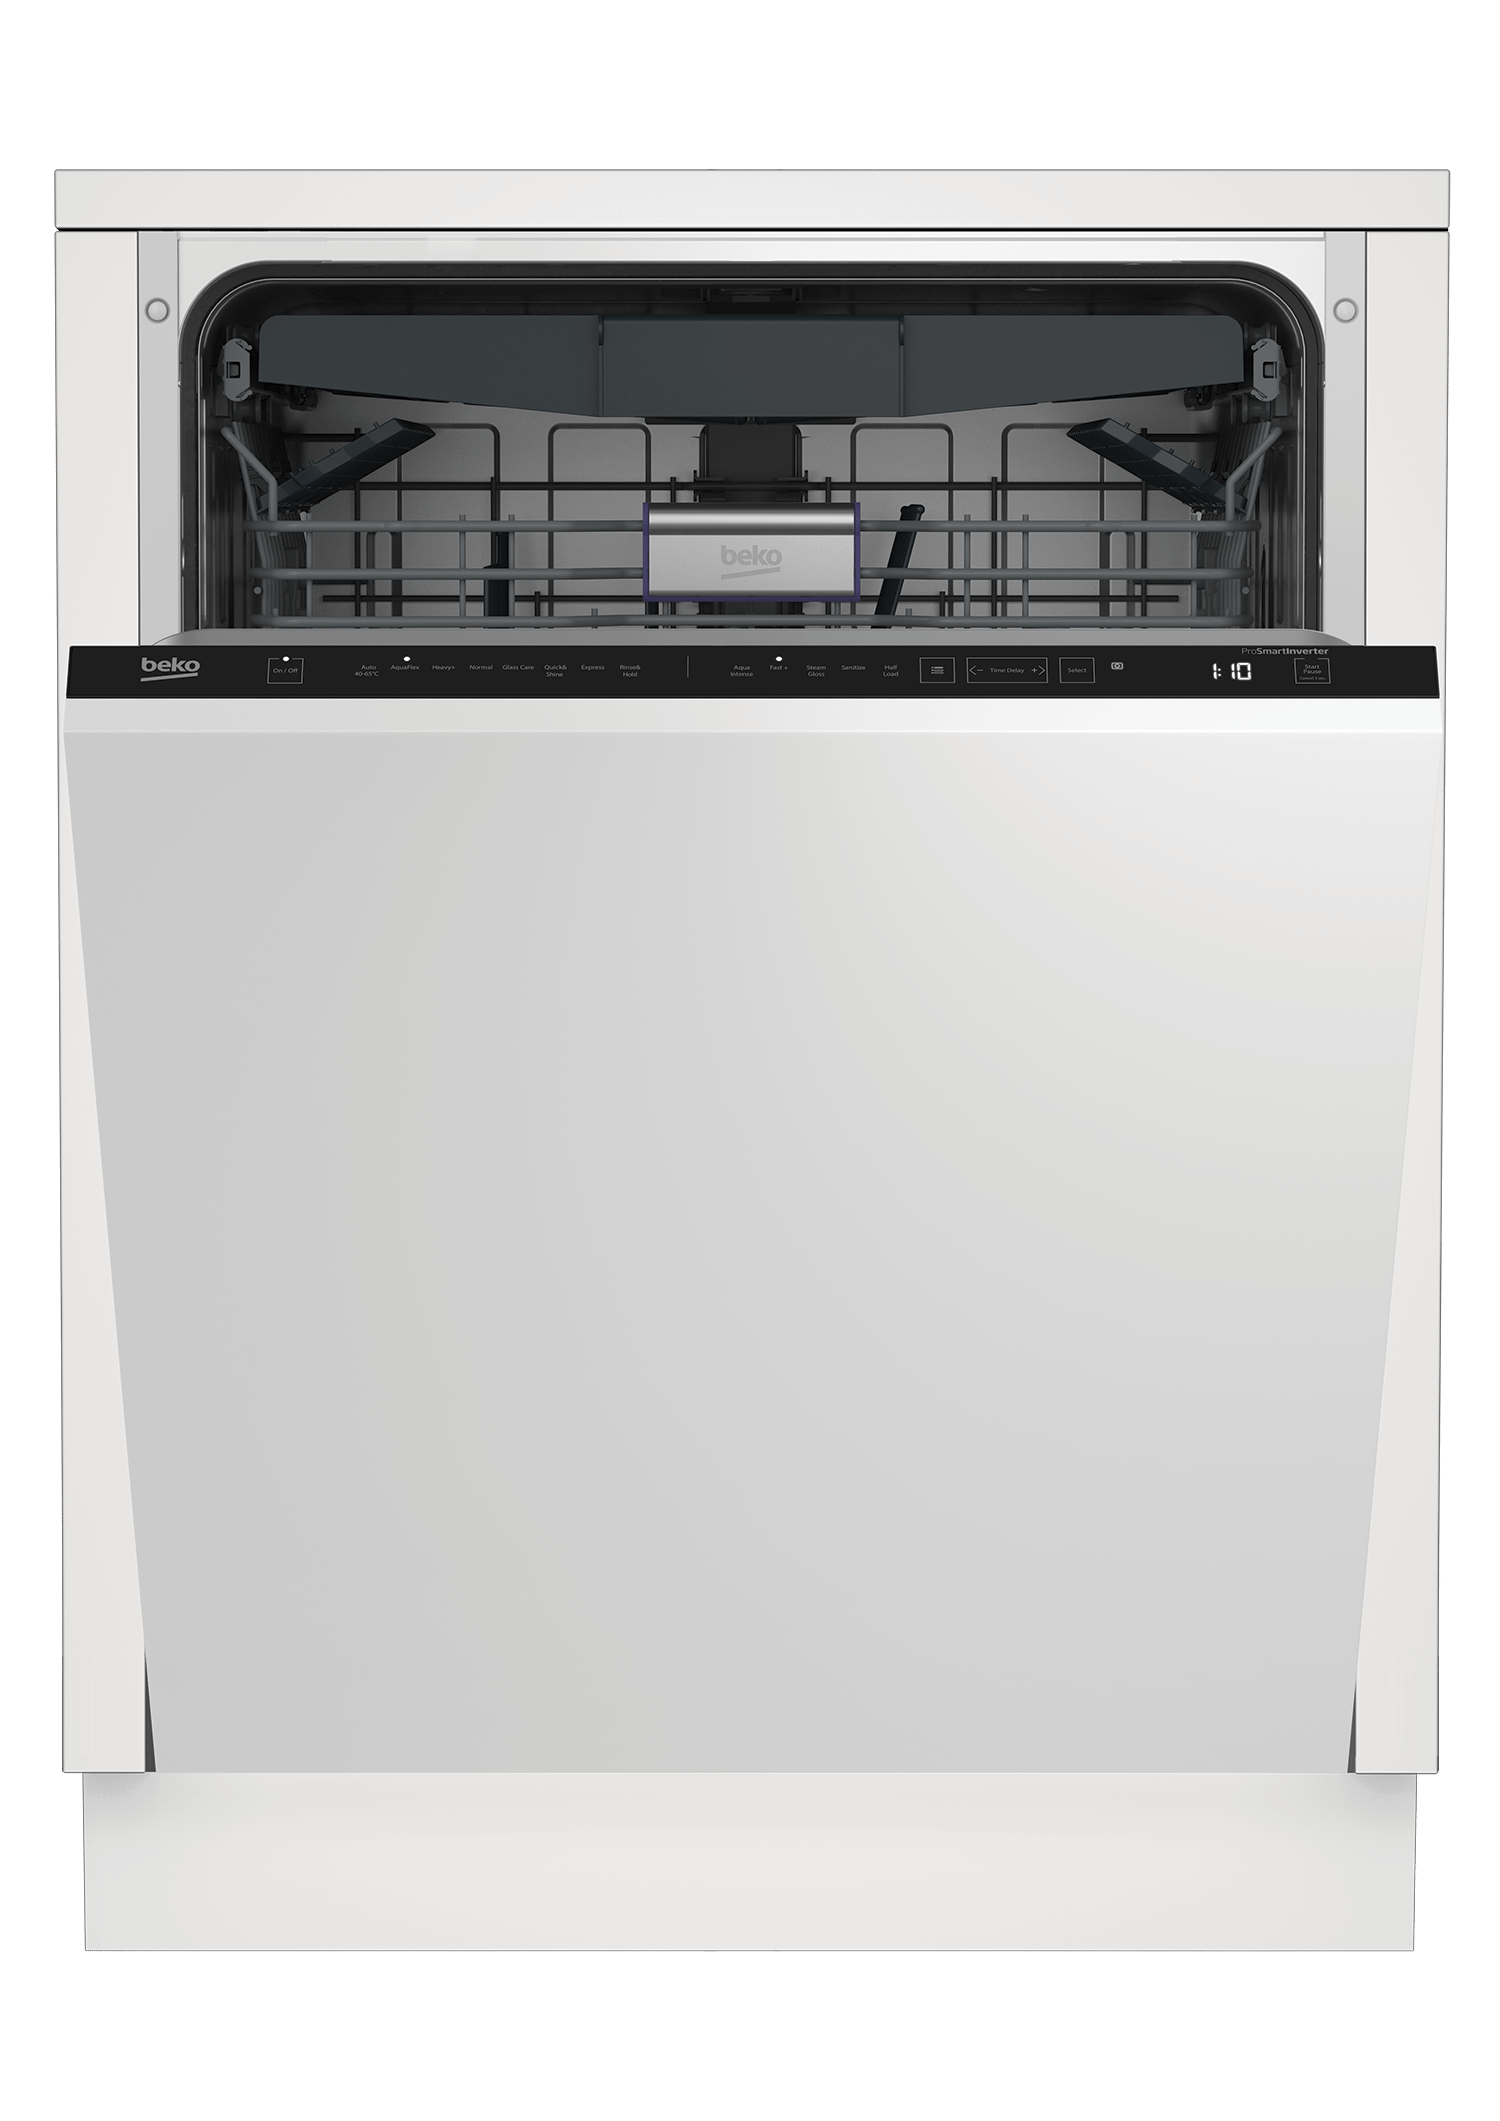 BekoTall Tub Dishwasher, 16 Place Settings, 45 Dba, Fully Integrated Panel Ready